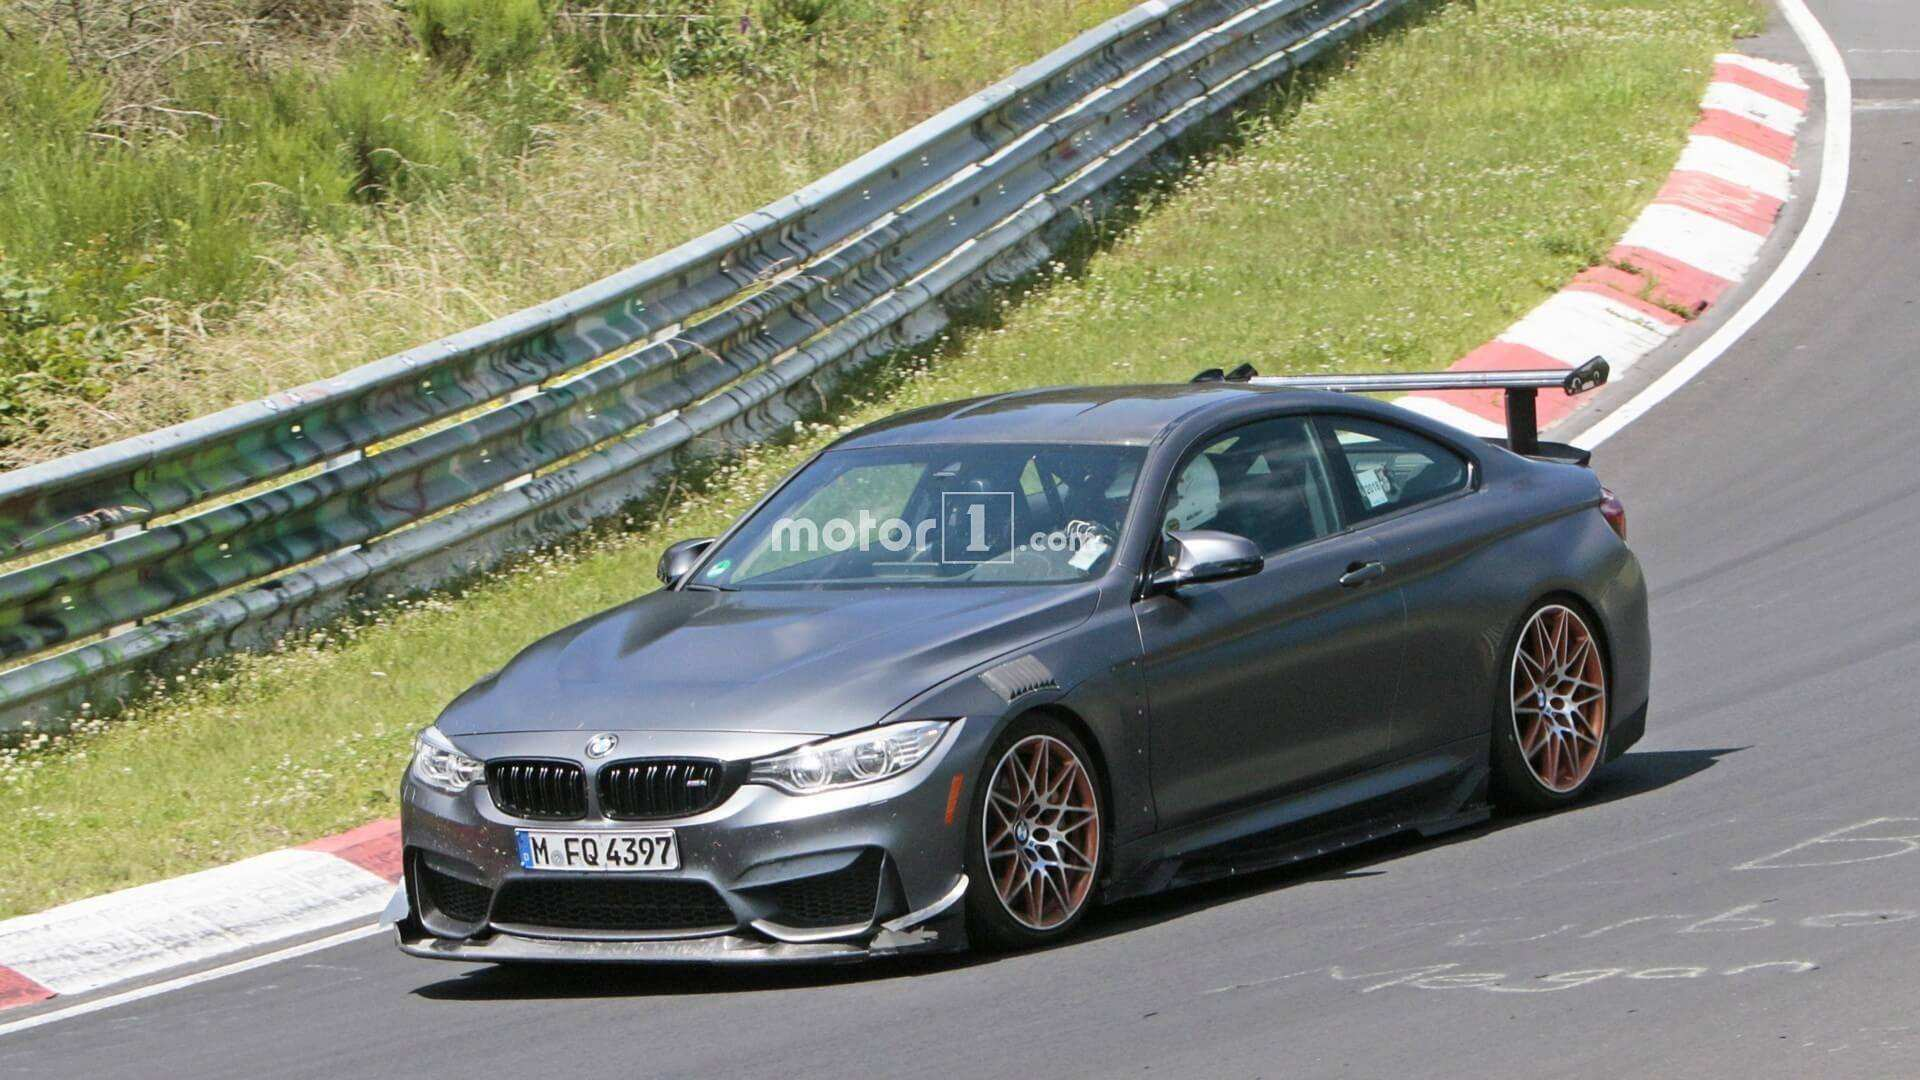 64 The Best 2019 BMW M4 Gts Redesign And Concept